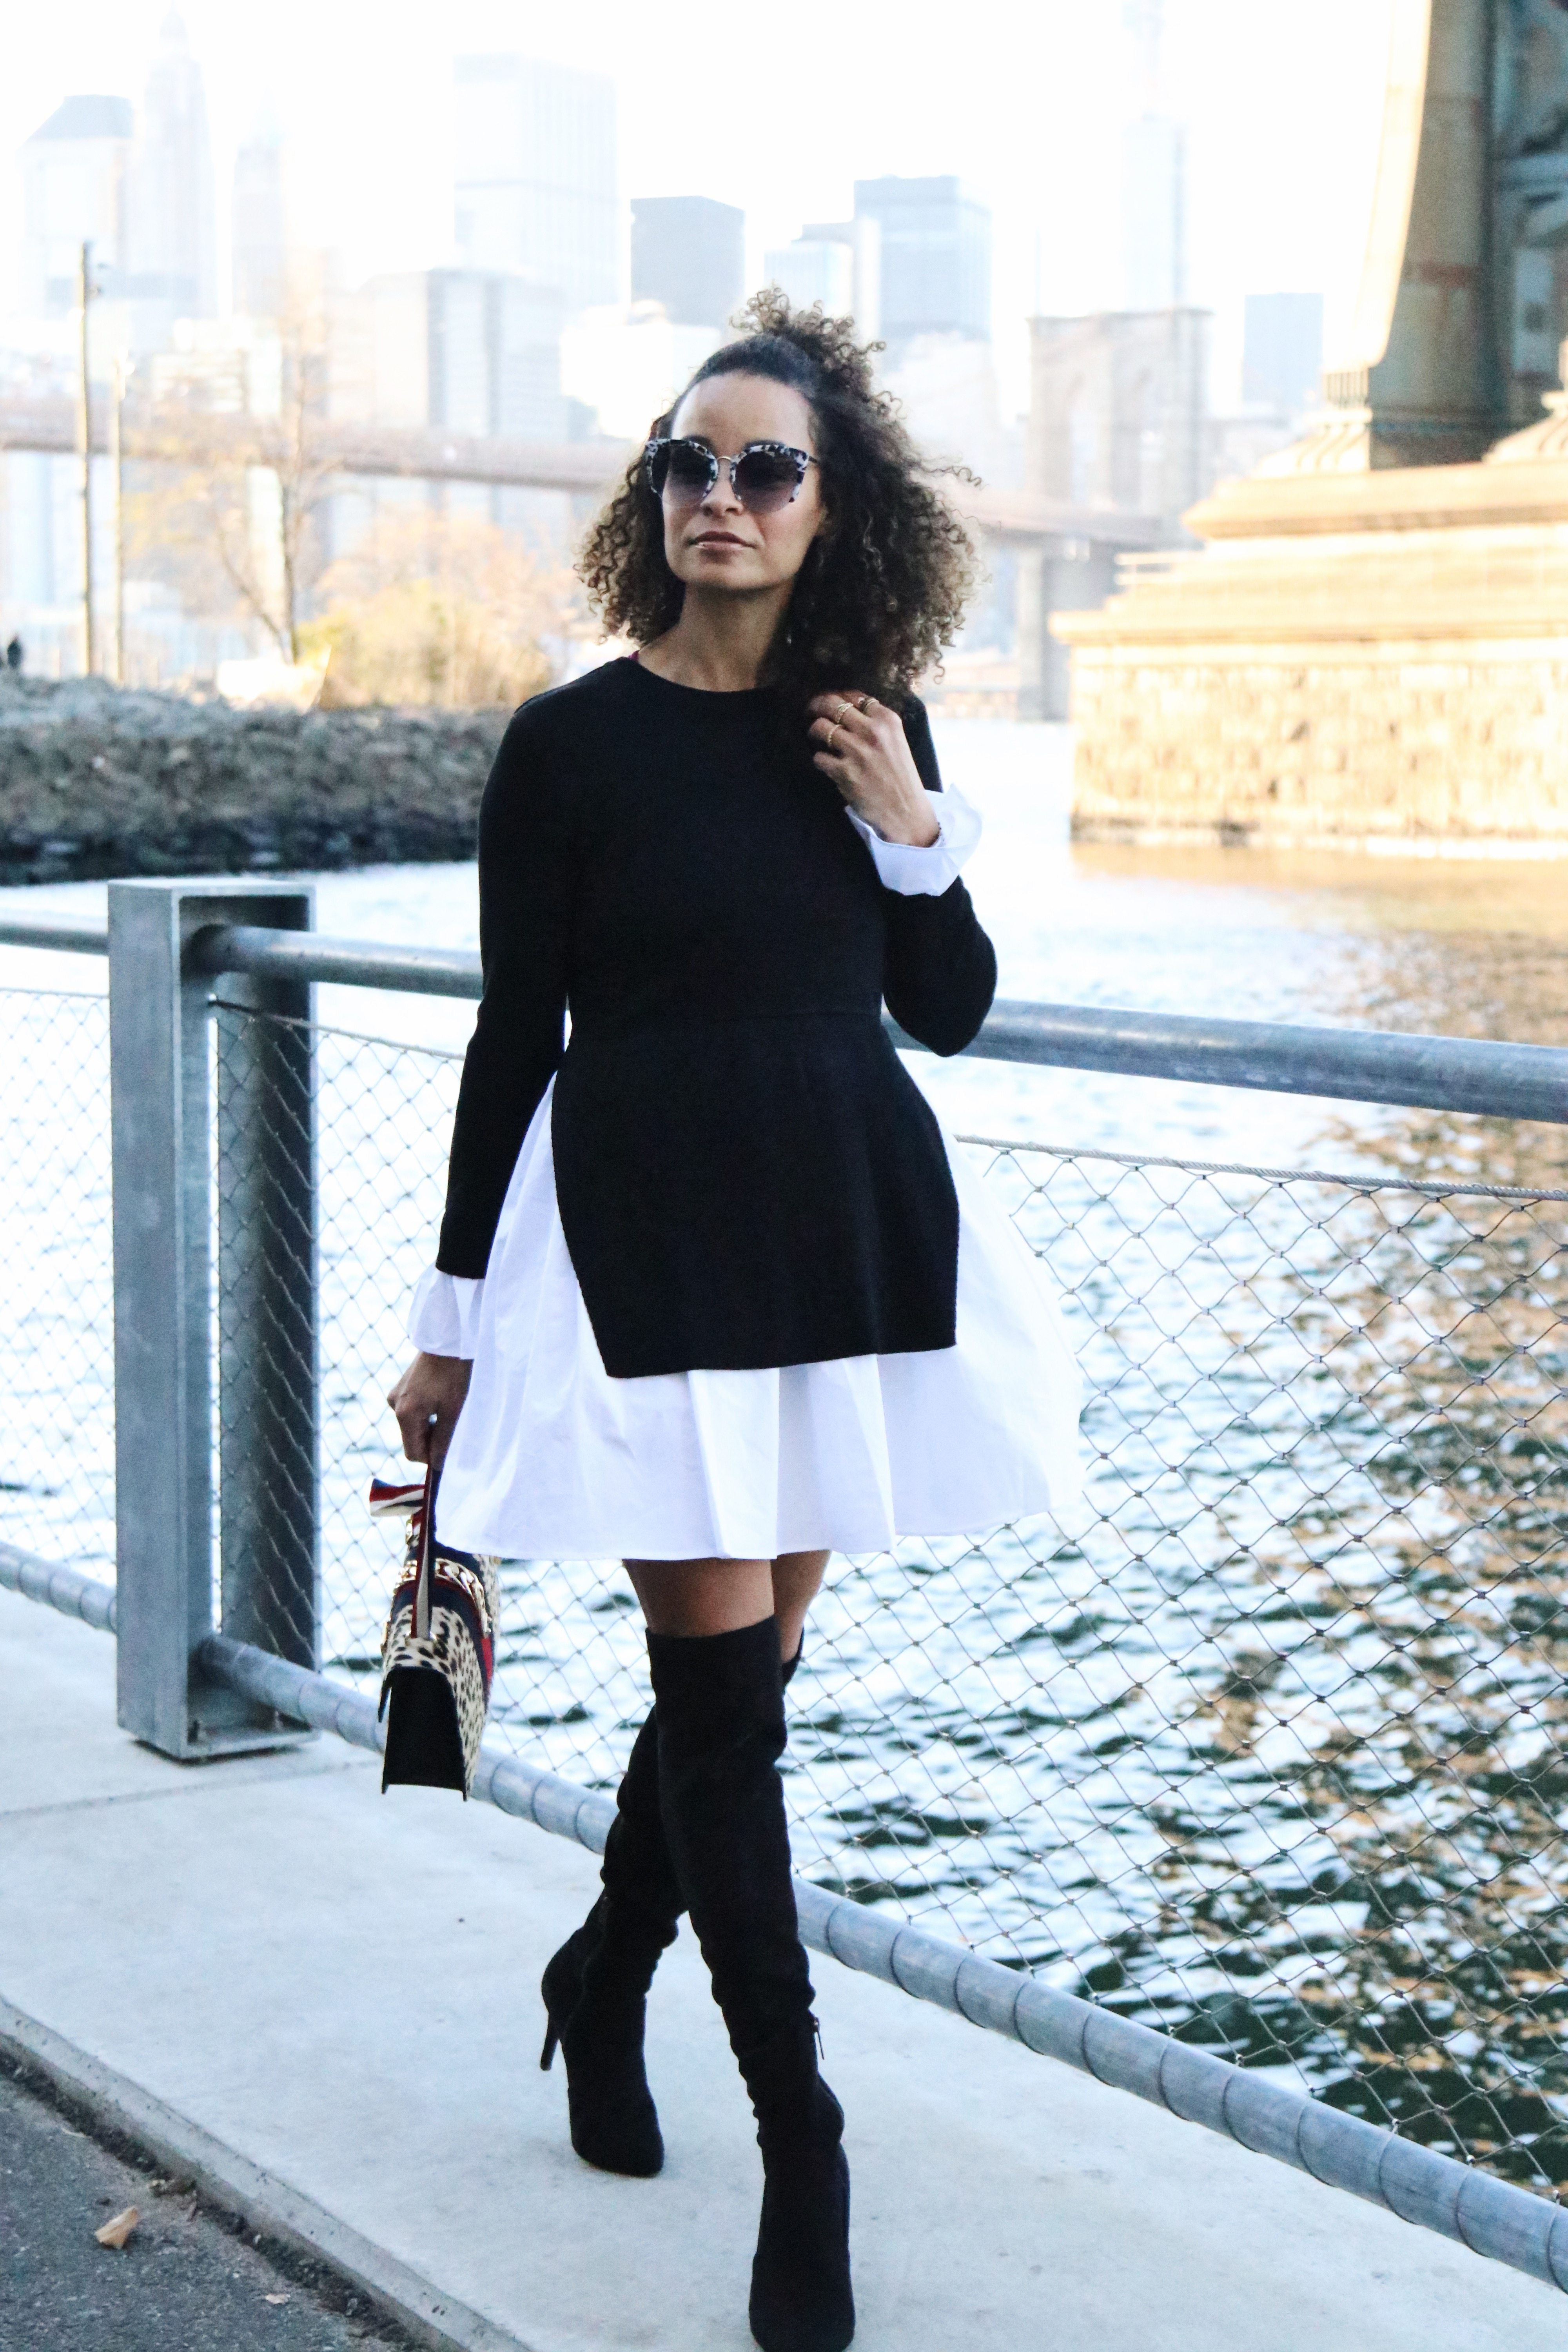 e679f5a3197 OOTD  Styling a Shirt Dress for The Office - Scout The City